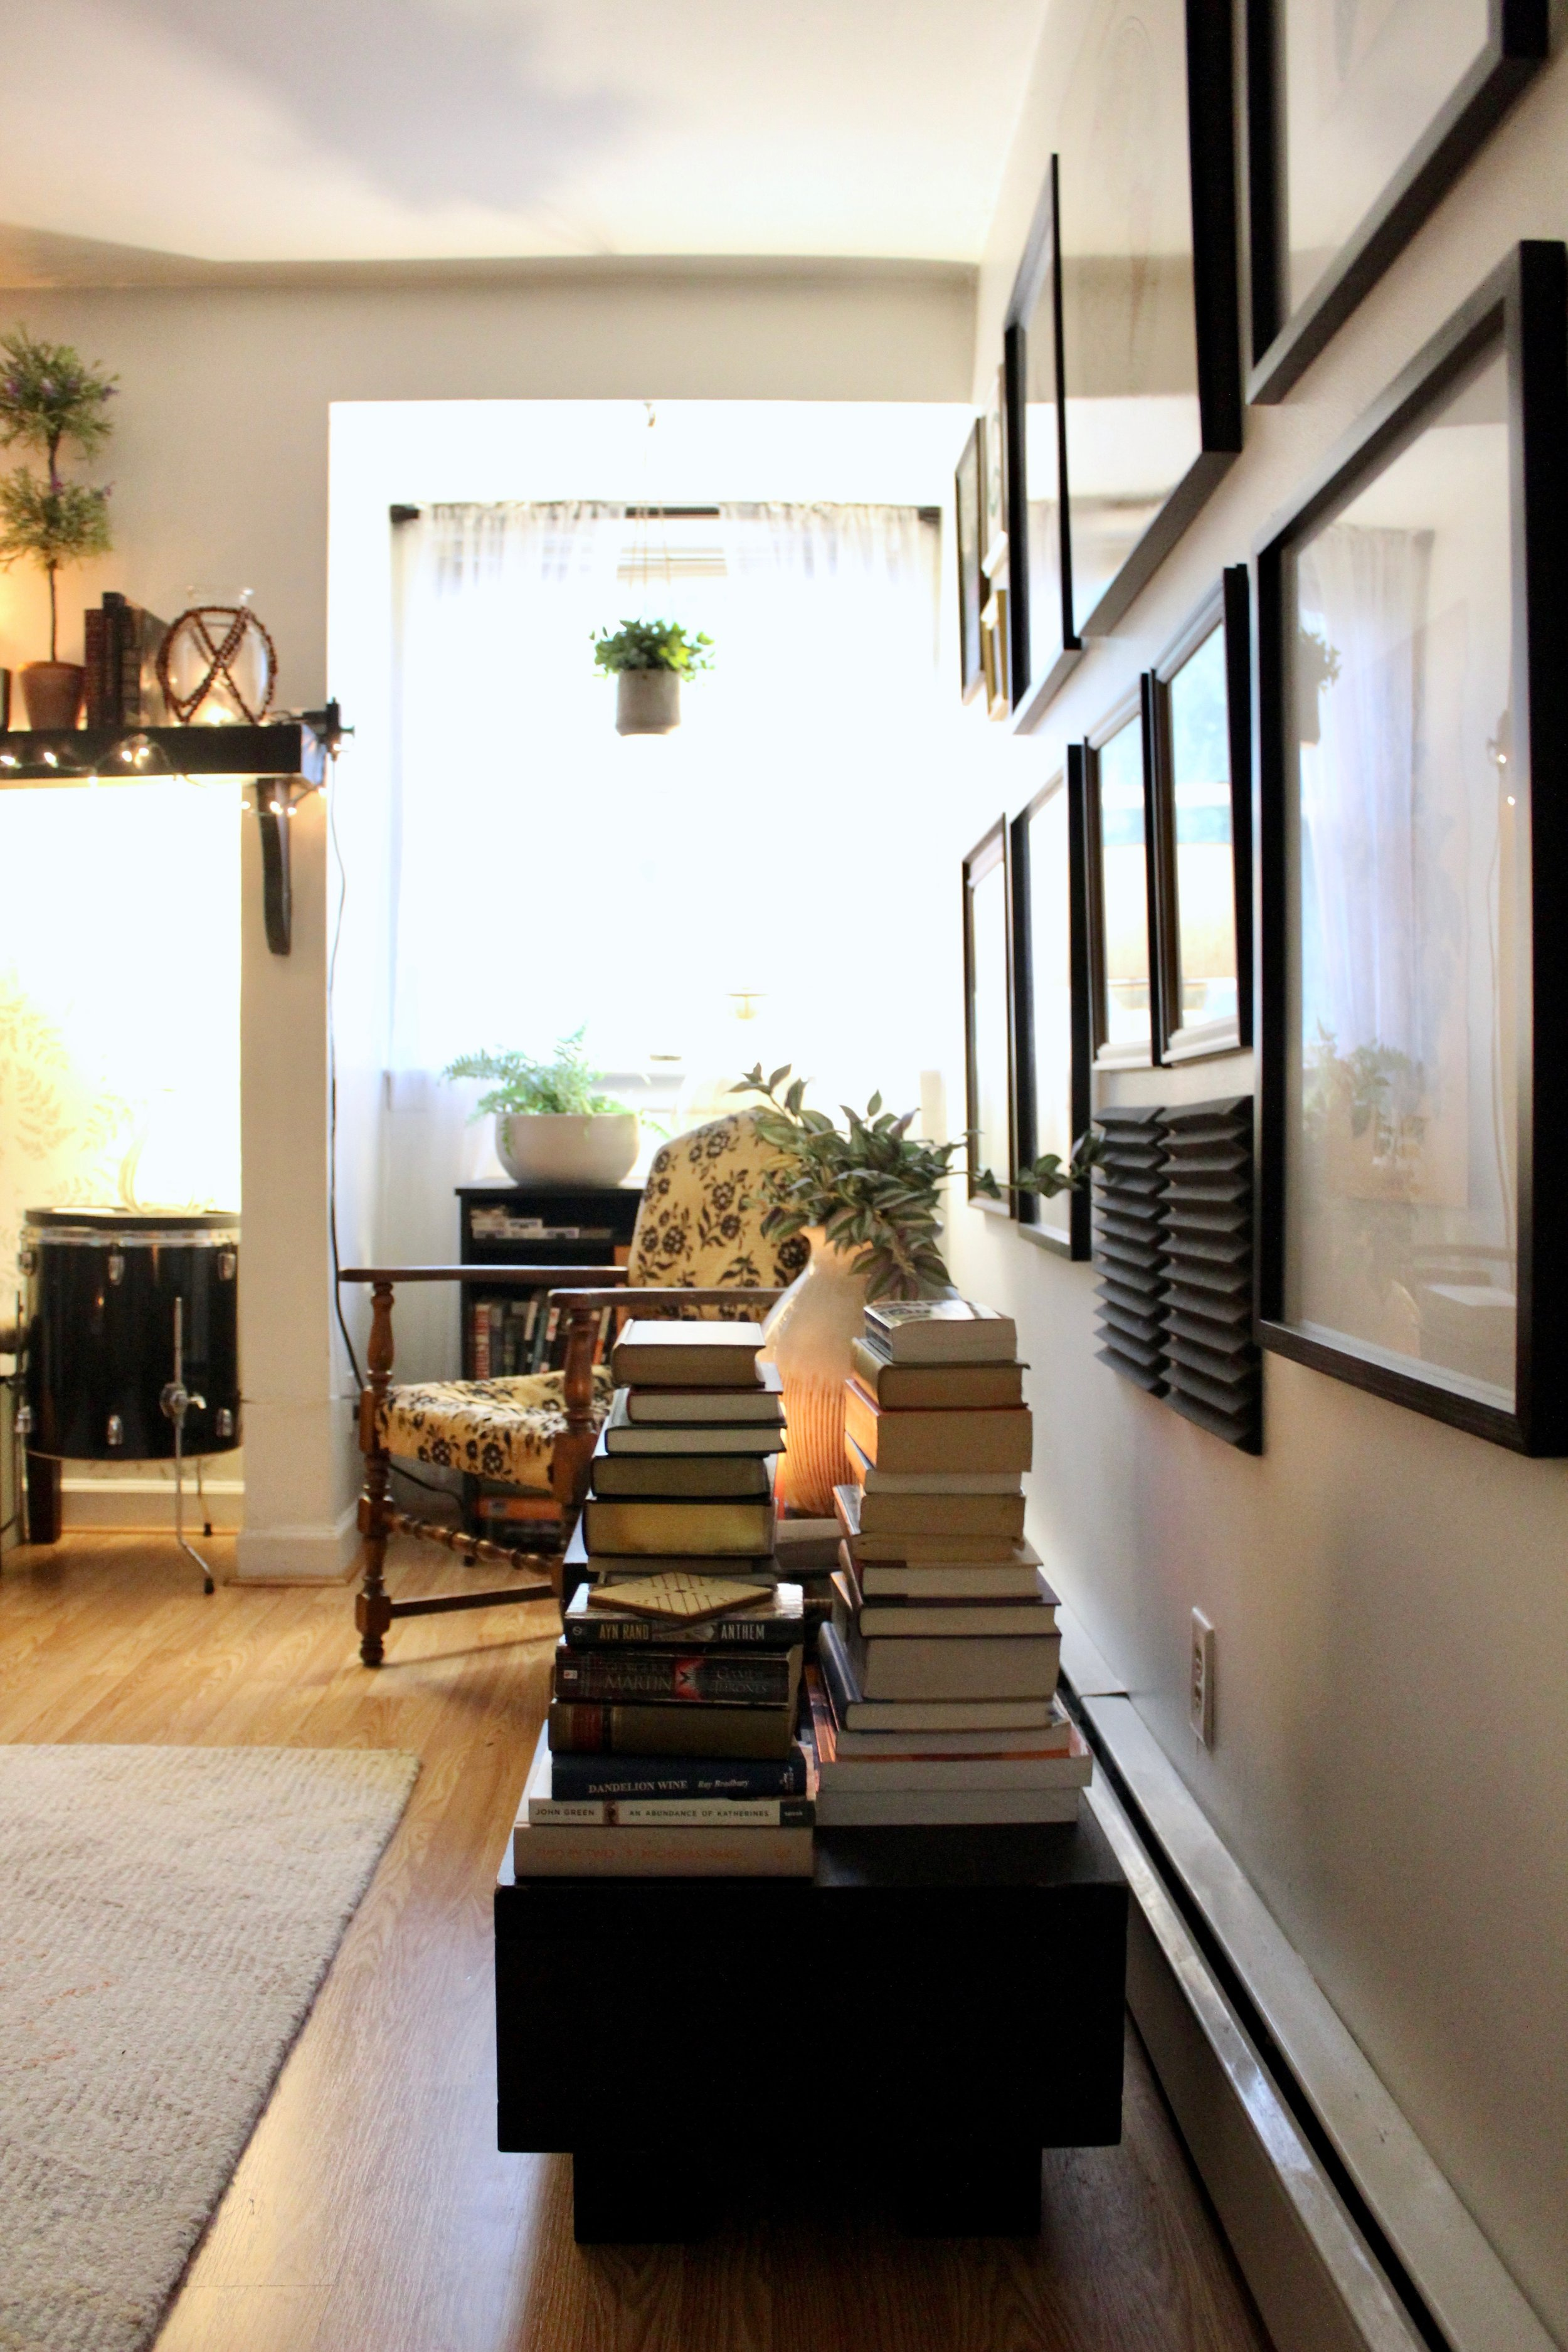 - I think stacks of books look great from any angle and you can arrange them in so many different ways, making books one of the most versitile home accessories.